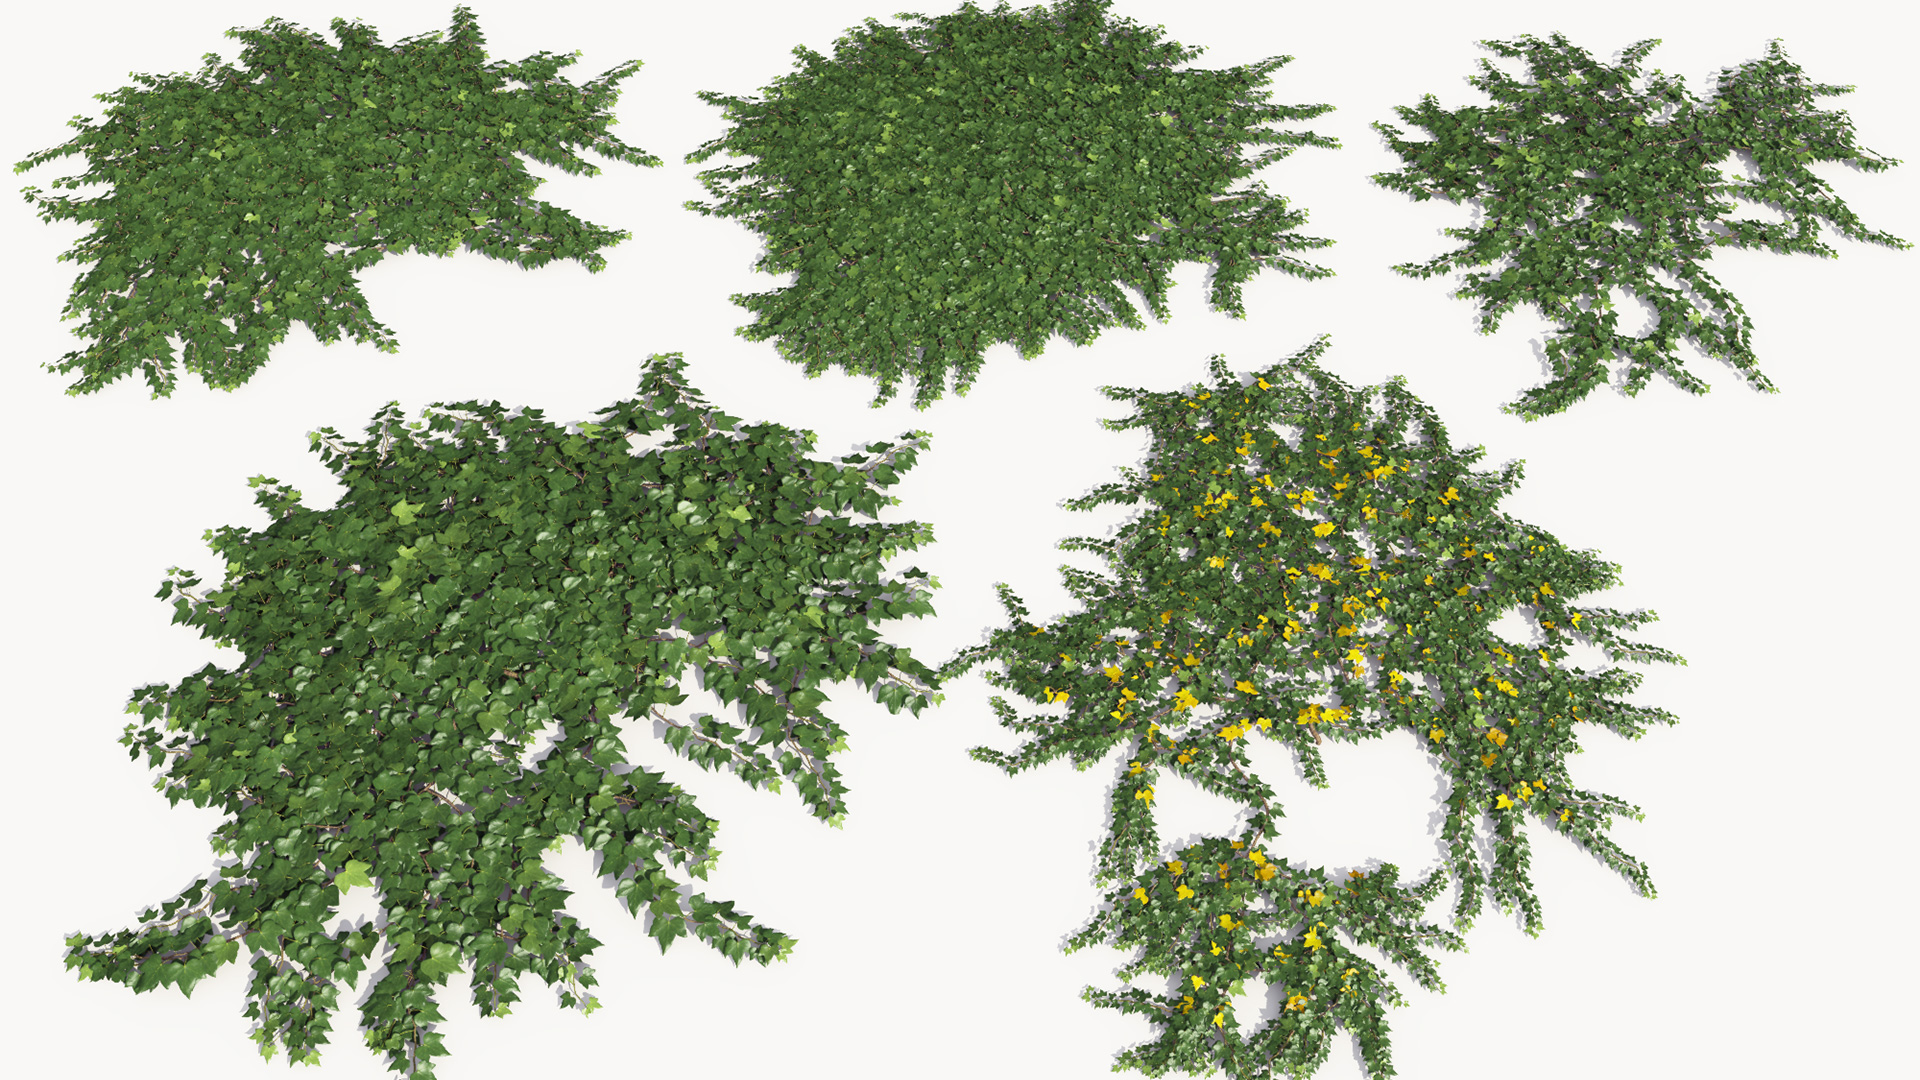 3D model of the Green ivy ground cover Hedera helix ground cover green different presets